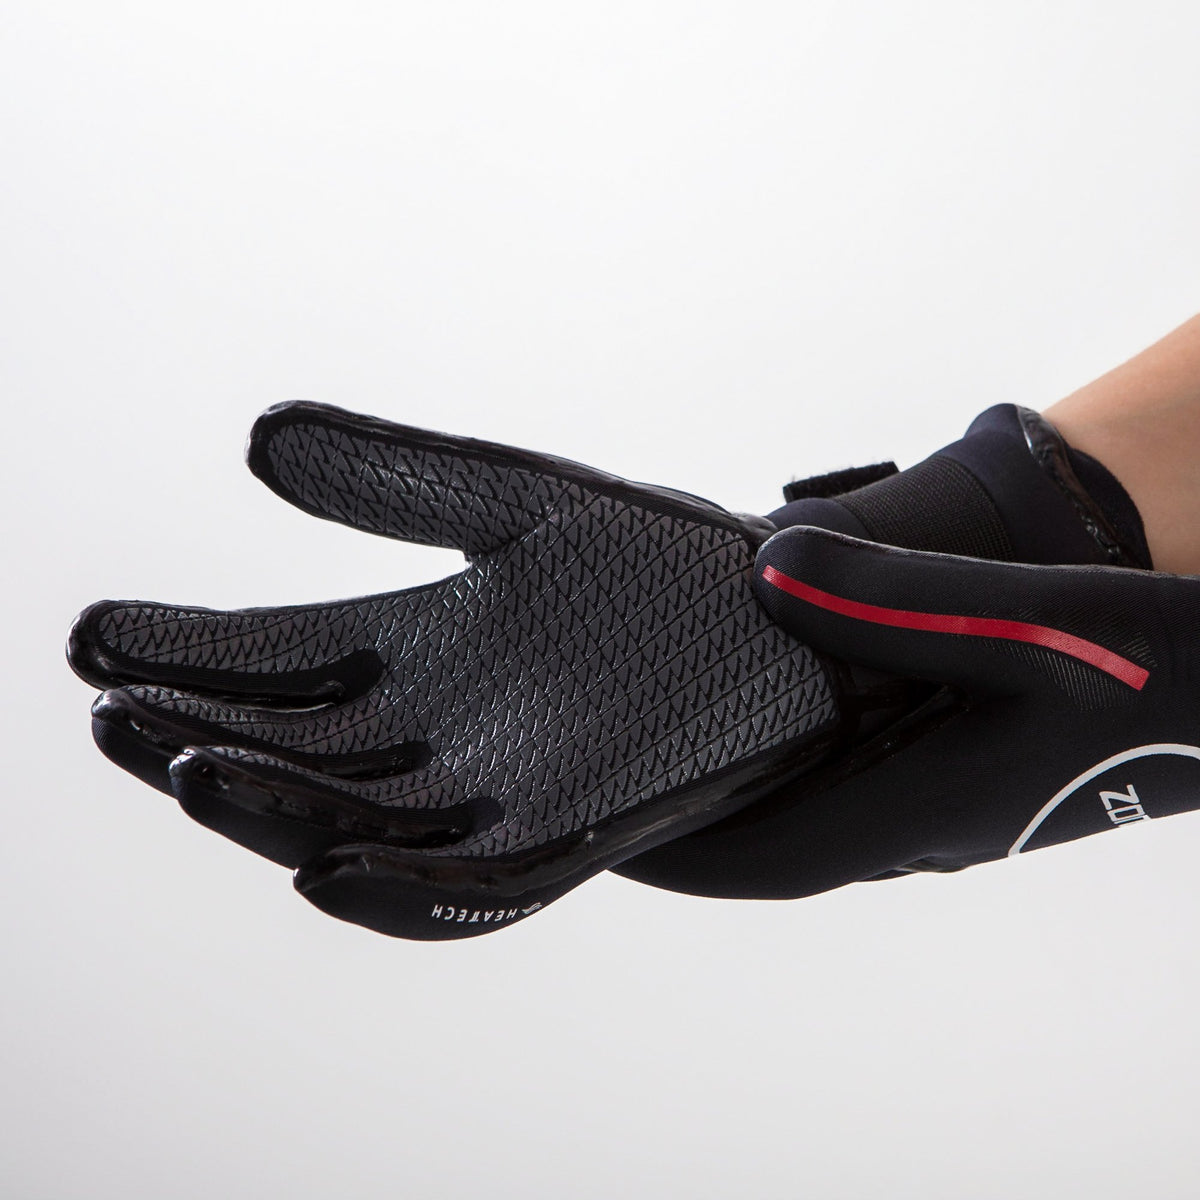 Neoprene Heat-Tech Warmth Swim Gloves hand